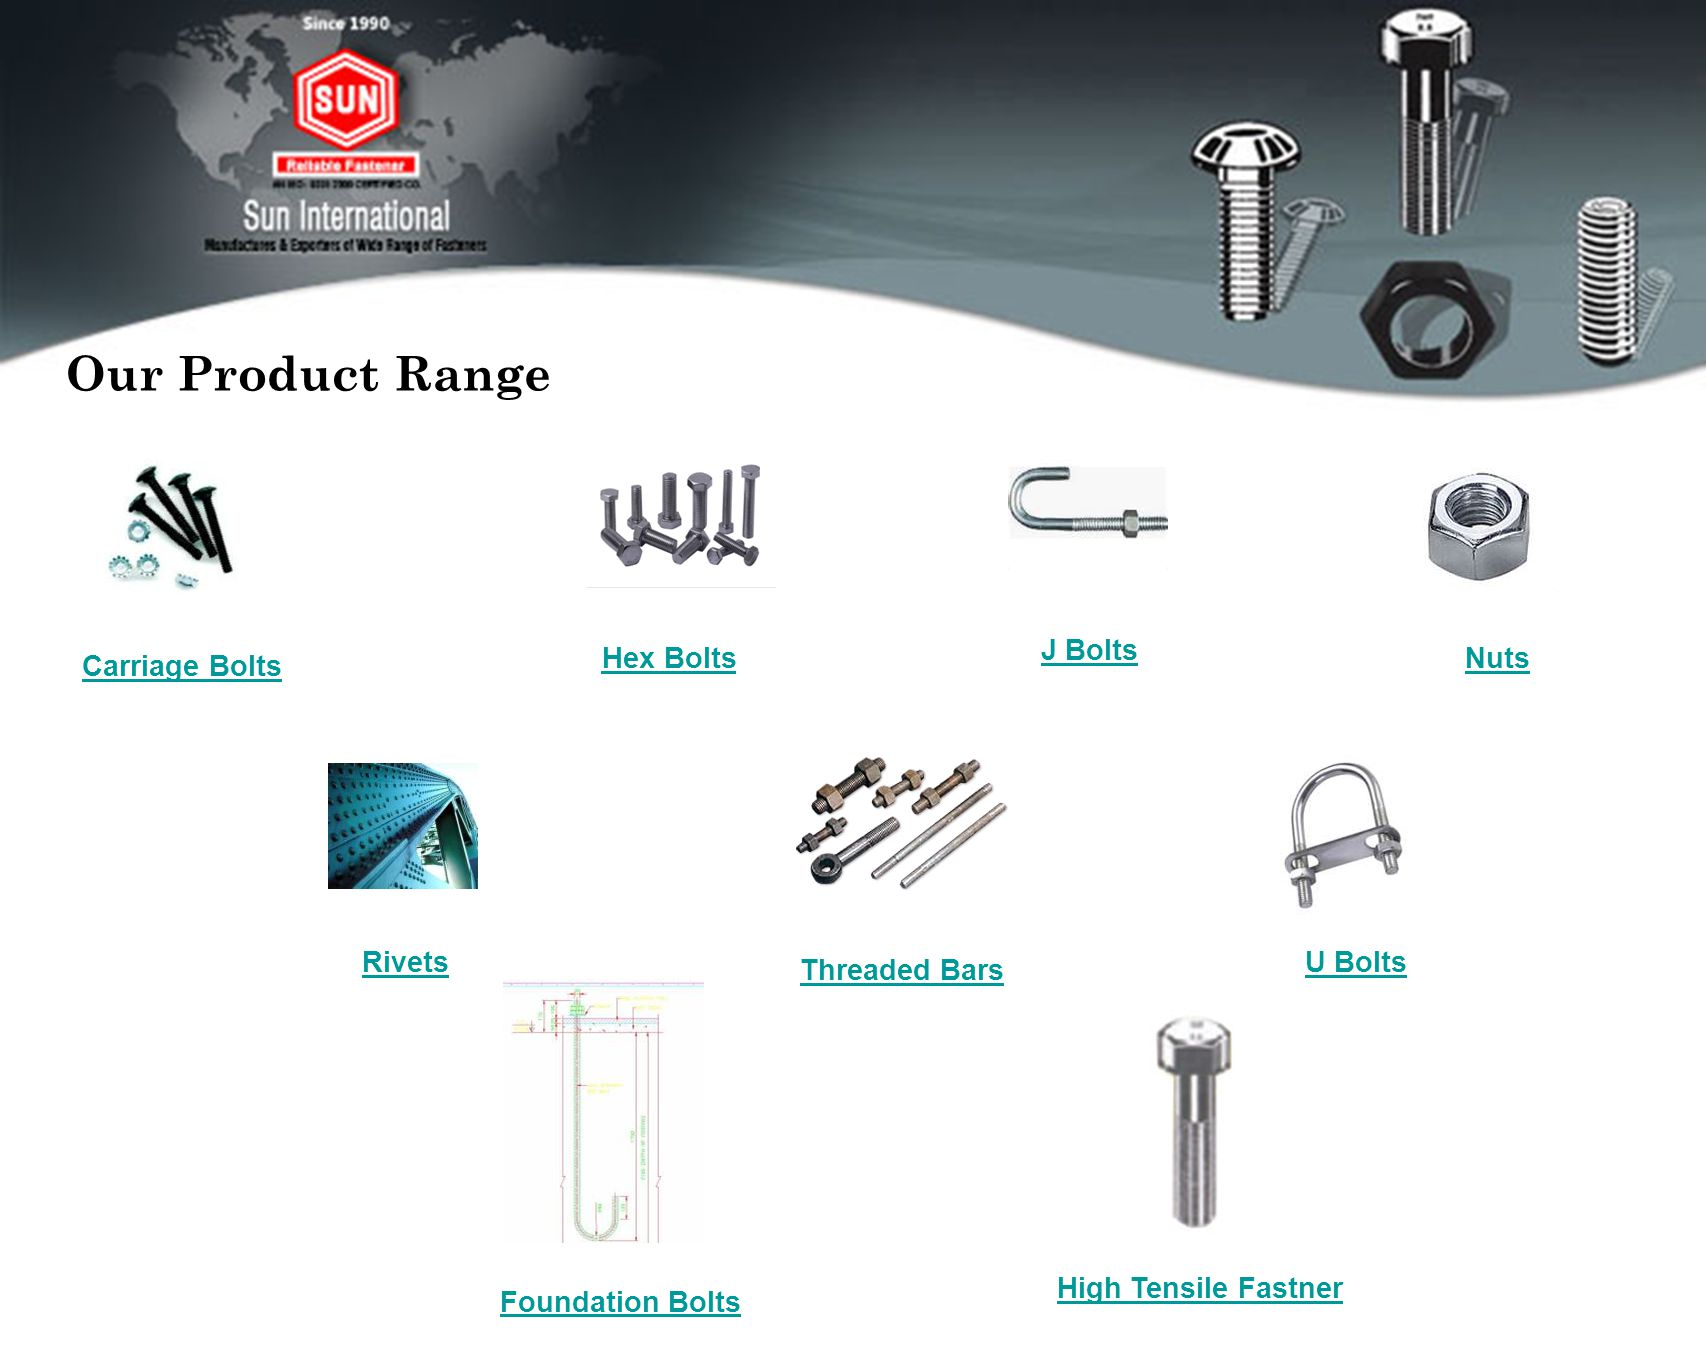 Our Product Range J Bolts Hex Bolts Nuts Carriage Bolts Rivets U Bolts